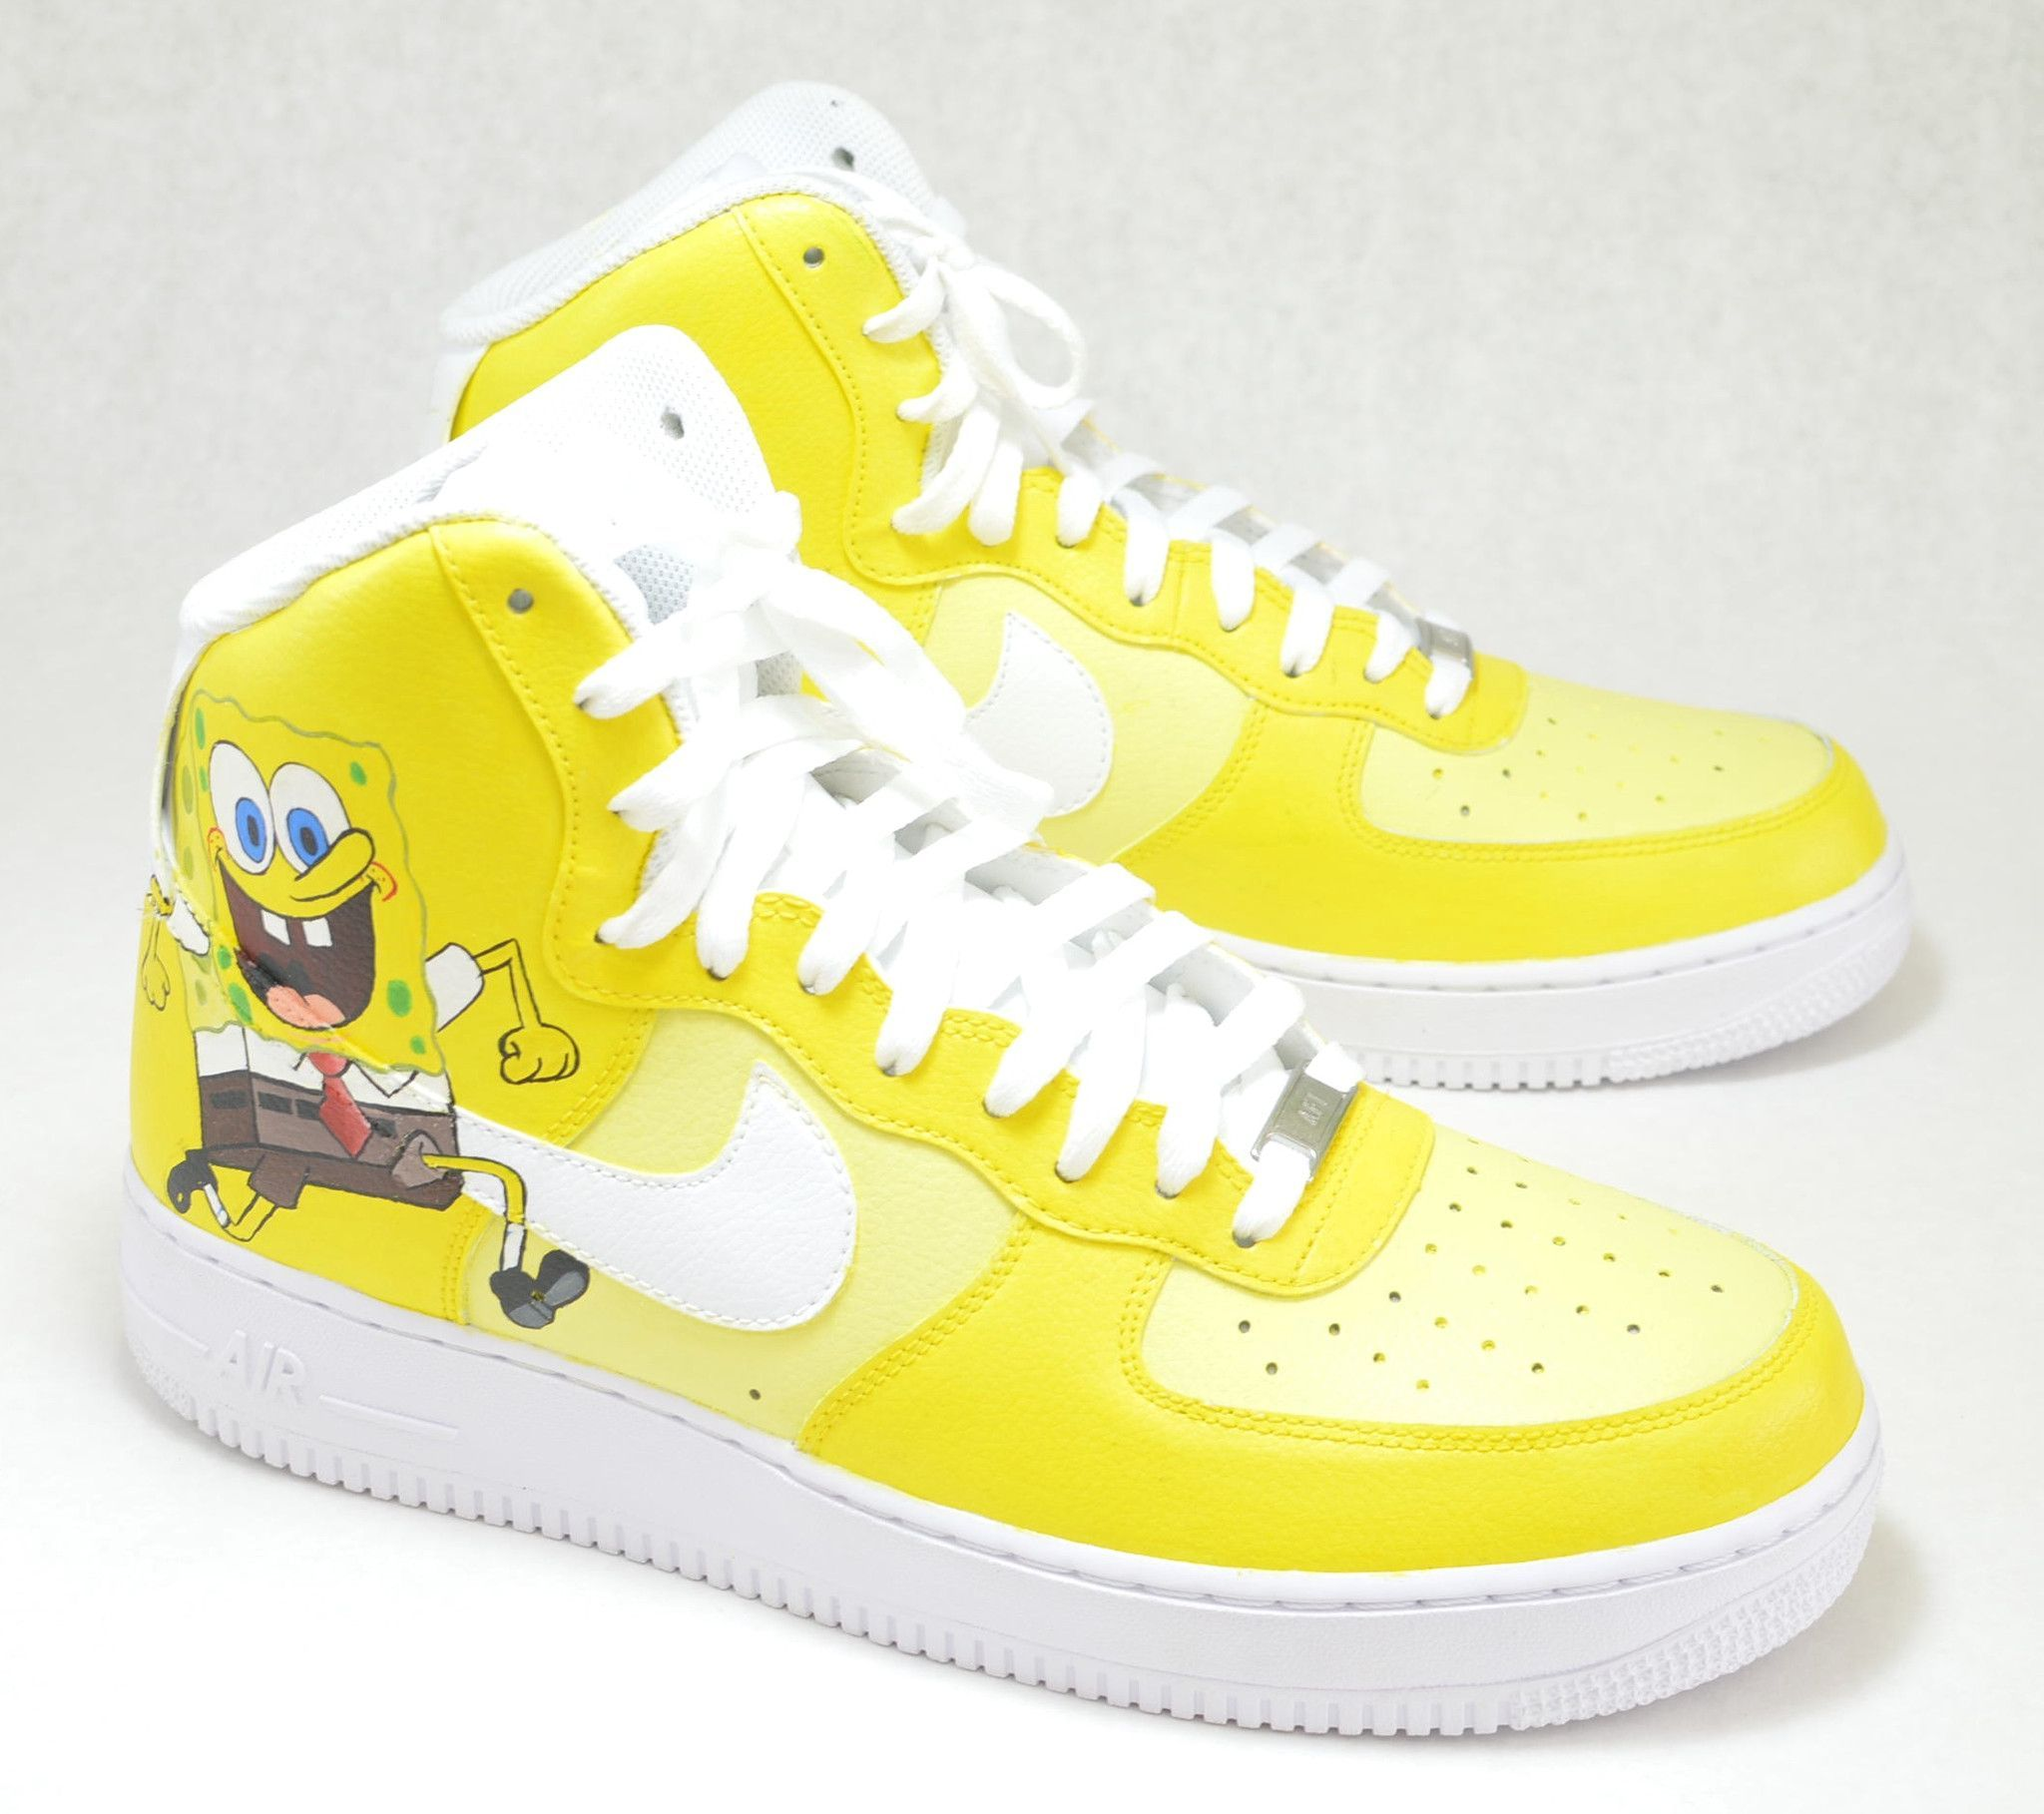 nike air force 1 high supreme spongebob